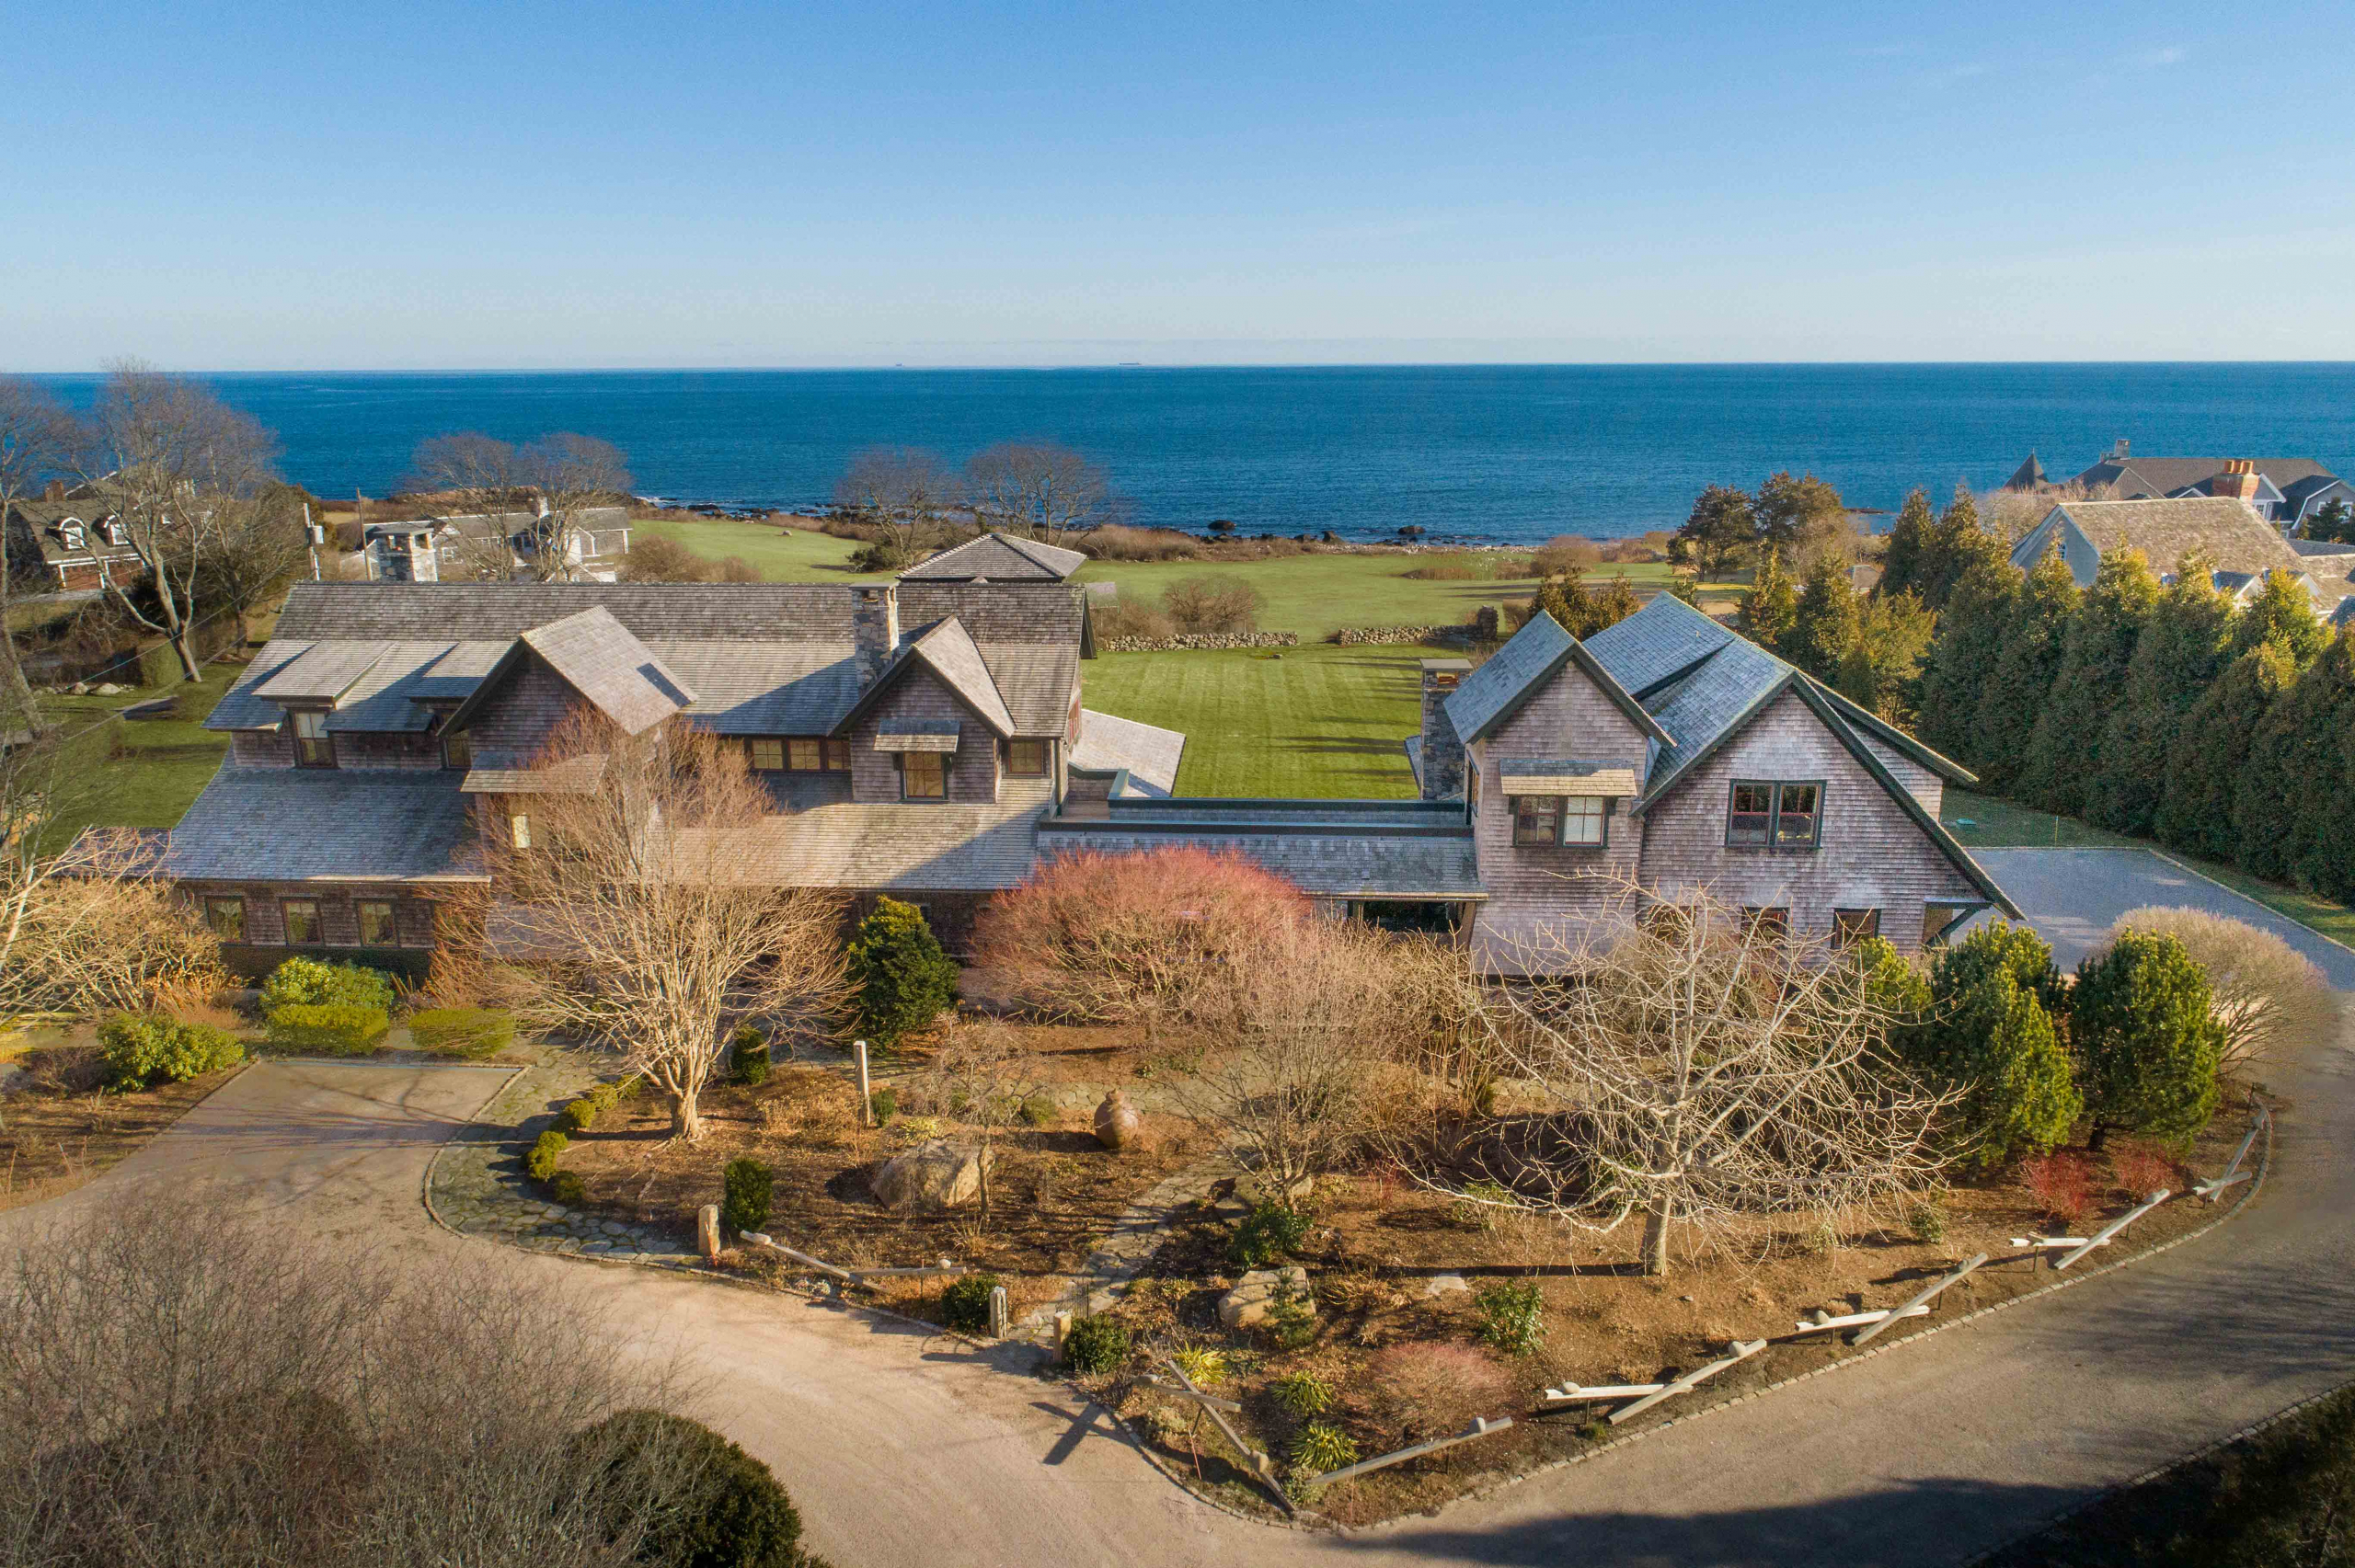 OCEAN ROAD AREA ESTATE SELLS AT LIST PRICE OF $4.45M, MARKING NARRAGANSETT'S HIGHEST SALE OF A NON-WATERFRONT HOME EVER*